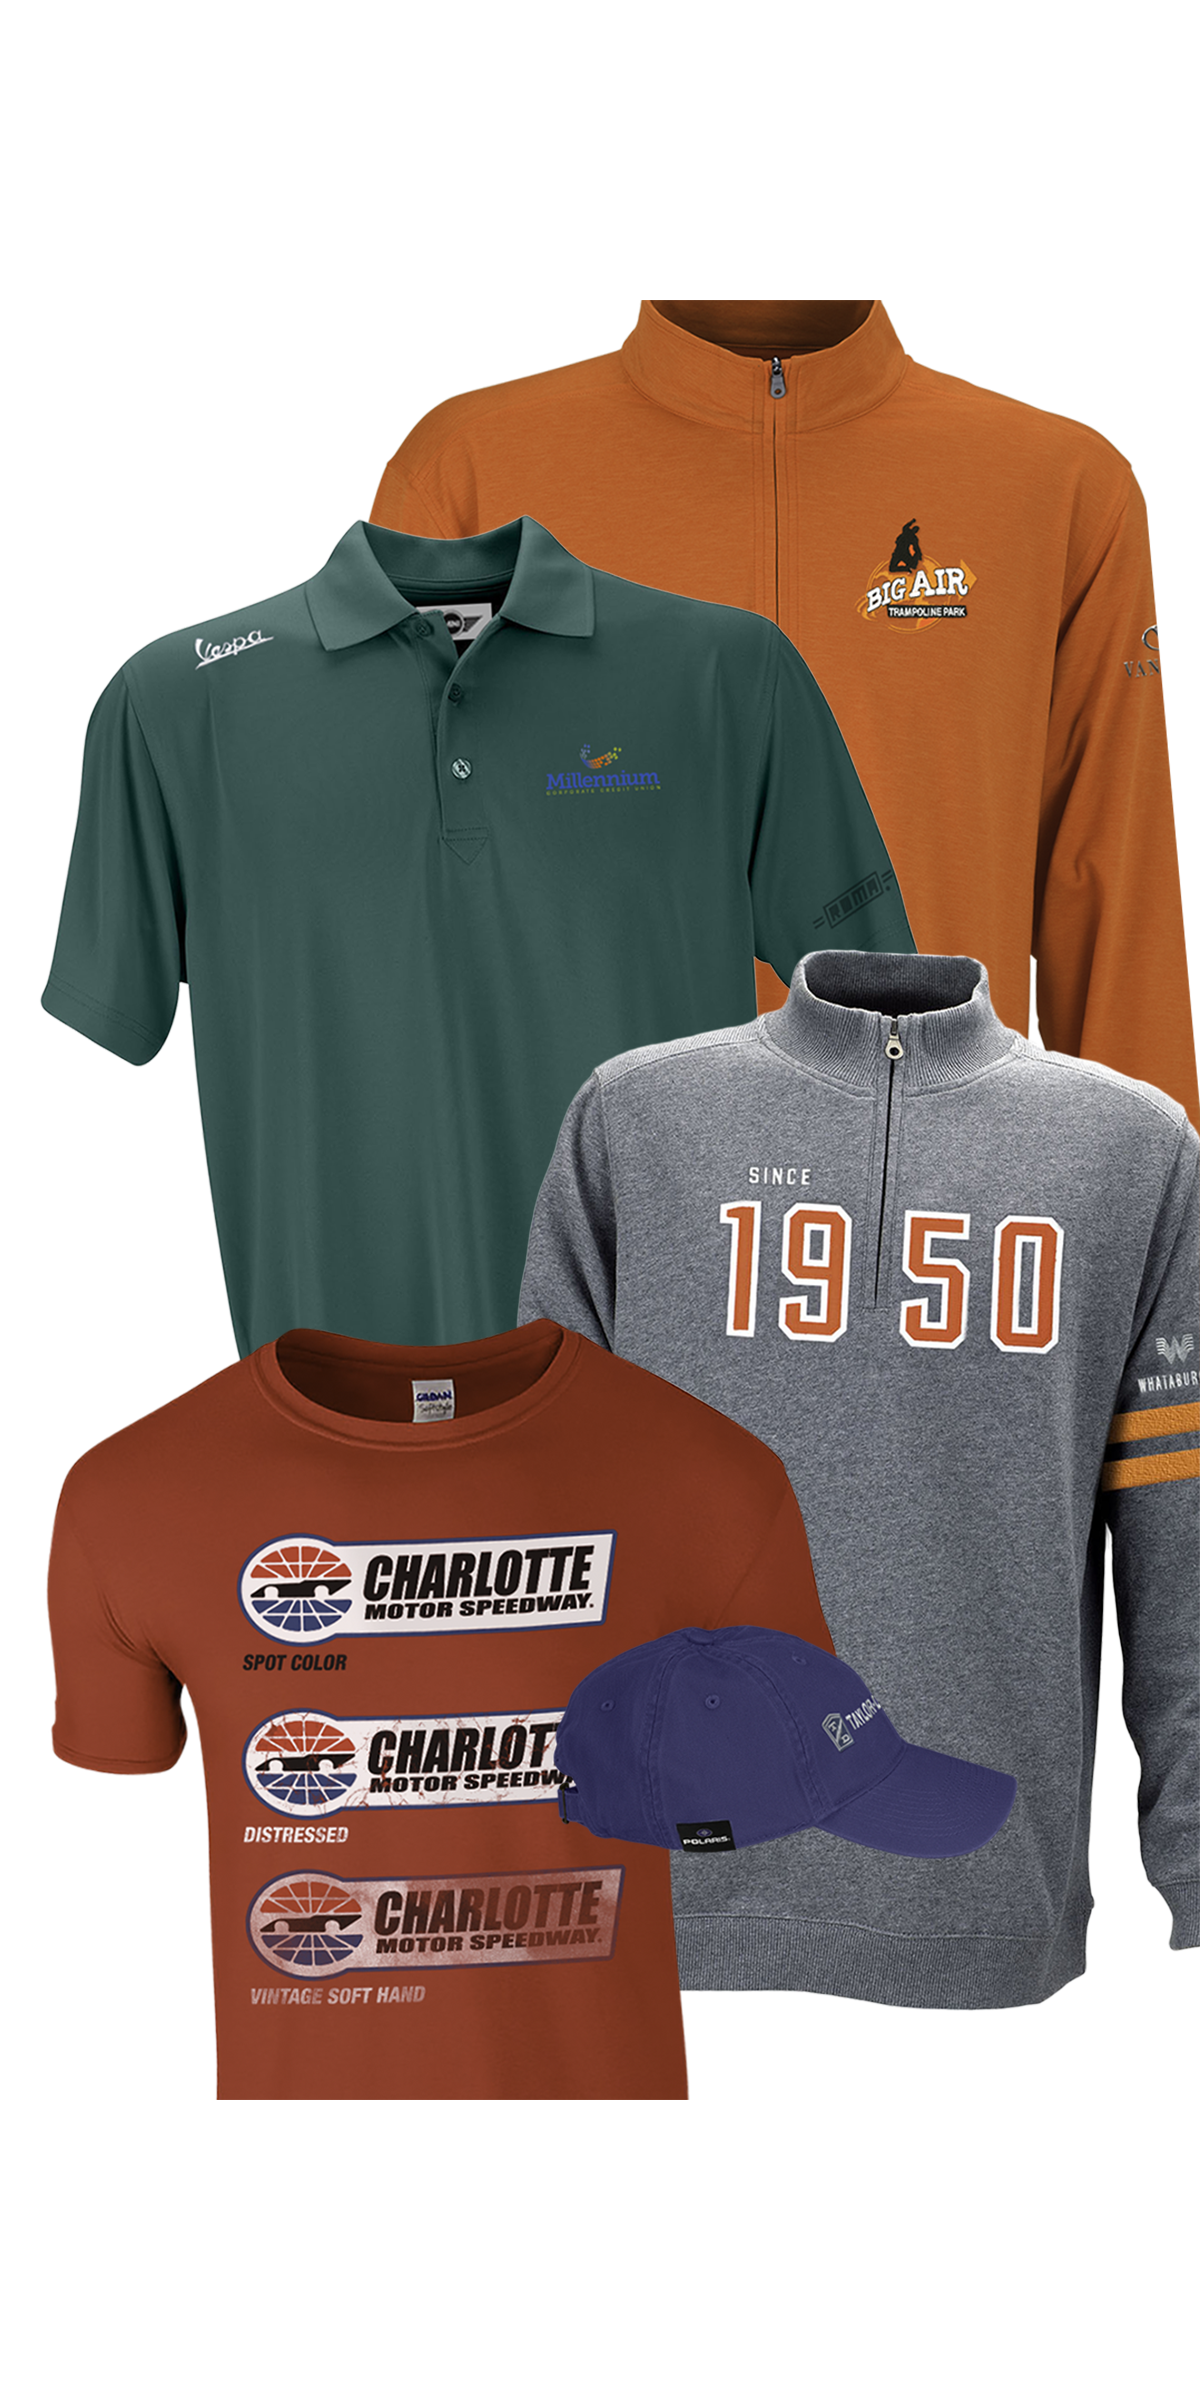 Vantage Apparel Nations Top Supplier For Custom Logo Apparel